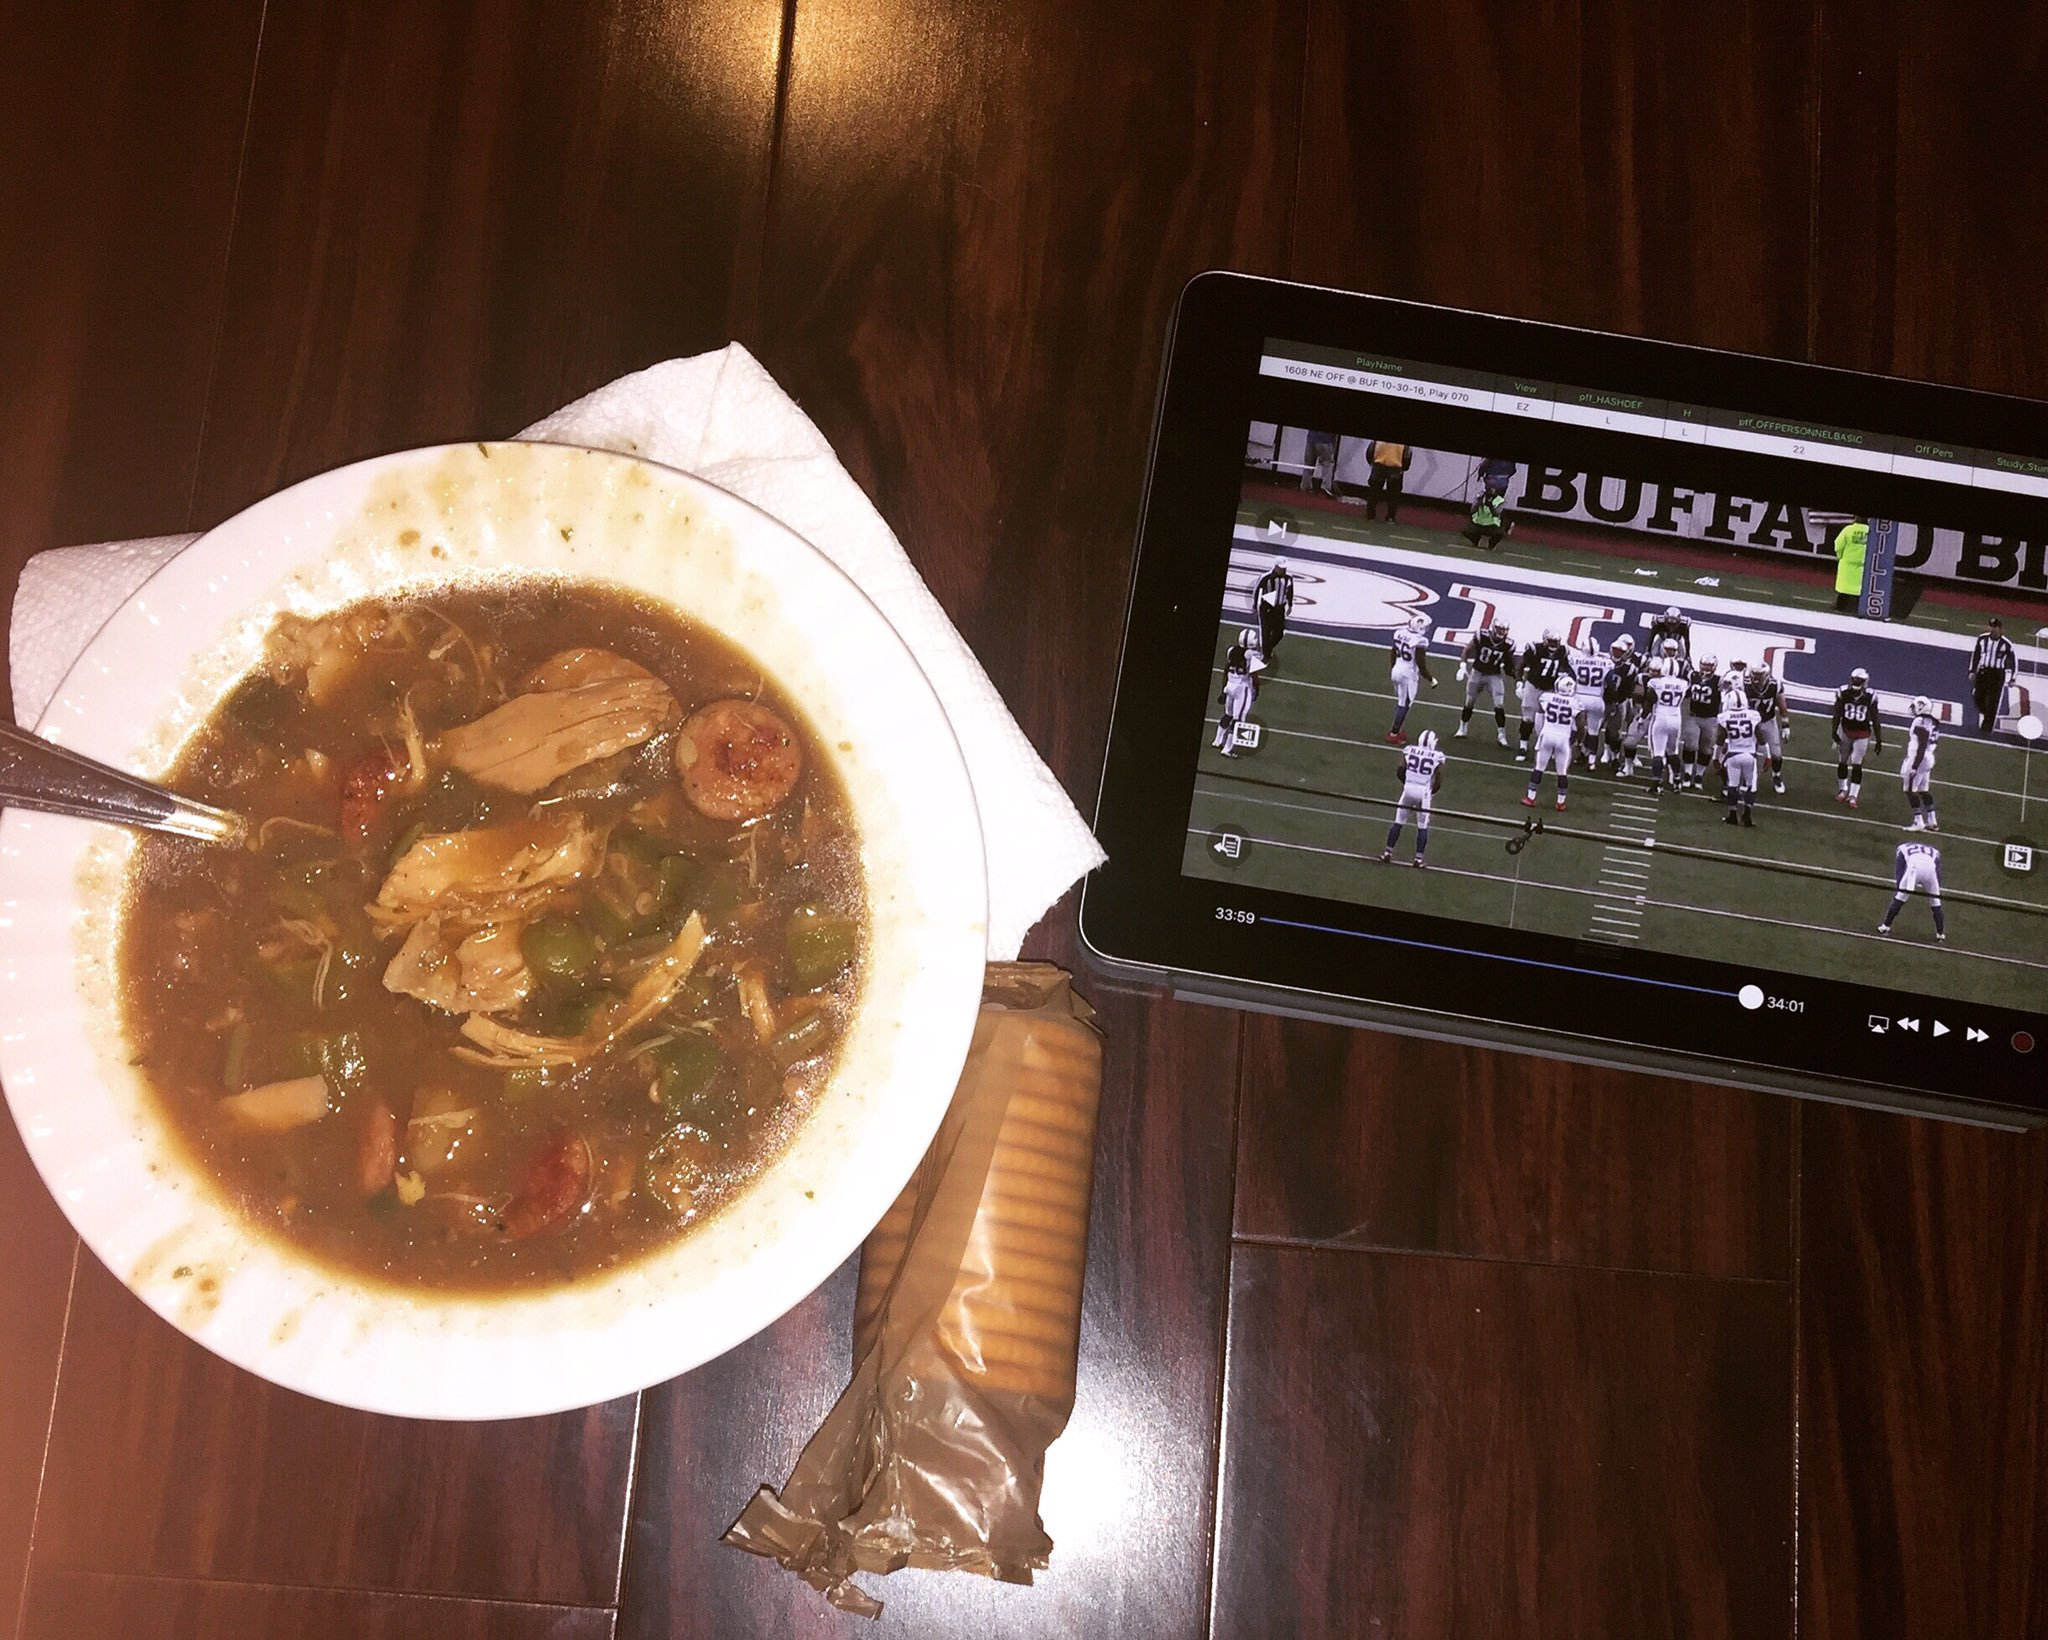 When you're getting a massage and studying film and your wife brings you a bowl of gumbo >>>>>>>  Thanks baby! https://t.co/Z2blI2WMCs